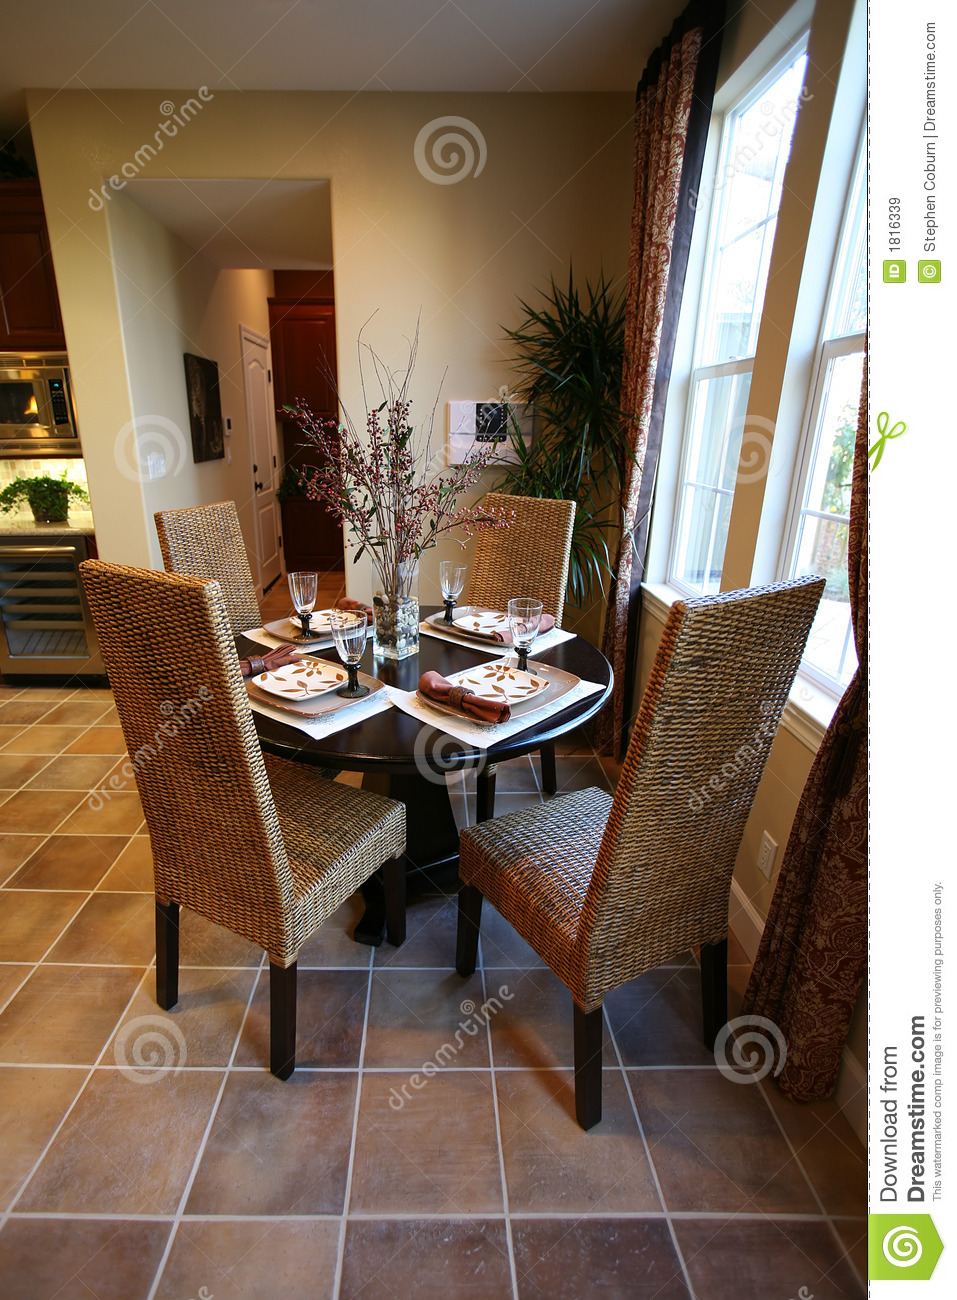 Dining and Kitchen Interior